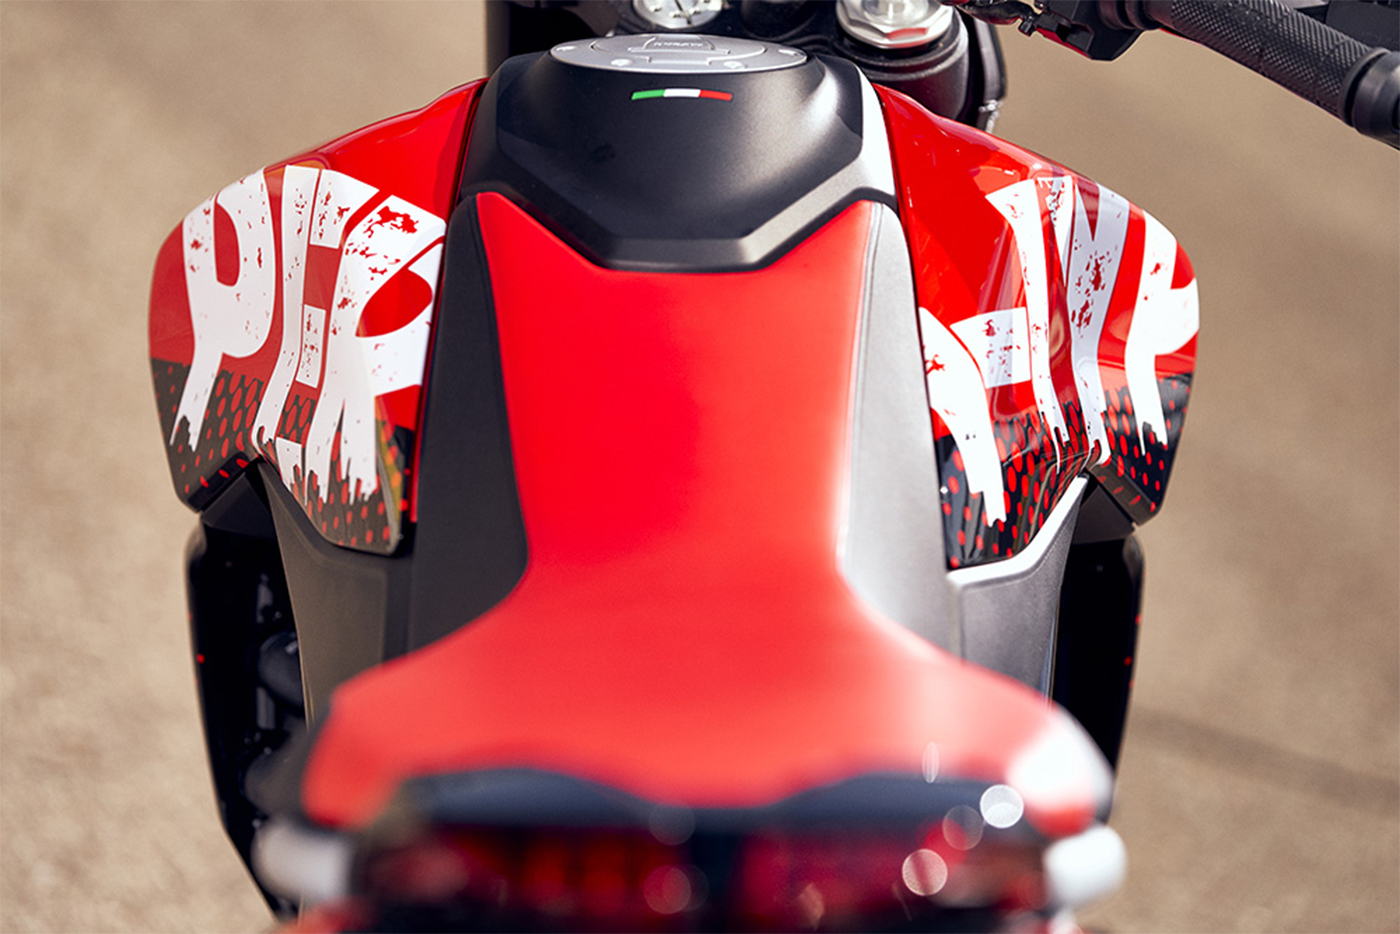 2020-ducati-hypermotard-950-rve-low-res-17.jpg